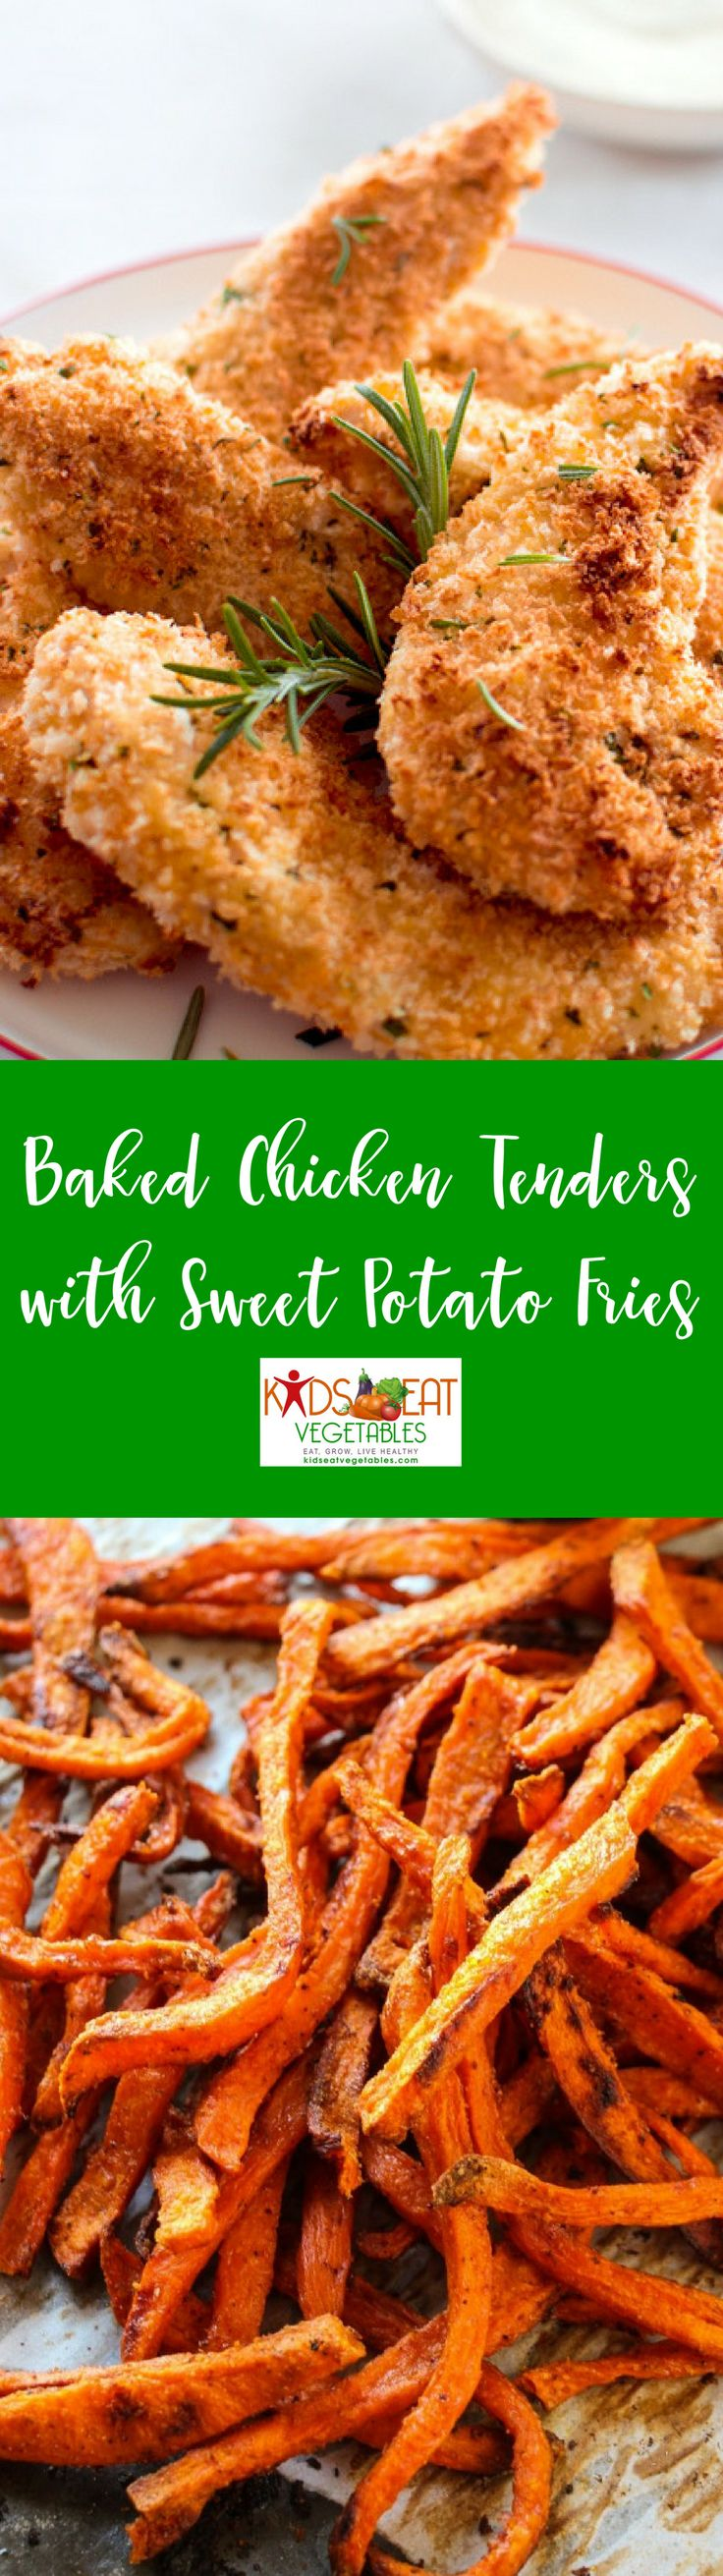 Give common favorites a healthy twist. Baked chicken tenders and sweet potato fries are a perfect meal example. Baking instead of frying greatly reduces the amount of fat but yields those signature tastes and textures children love while swapping white po